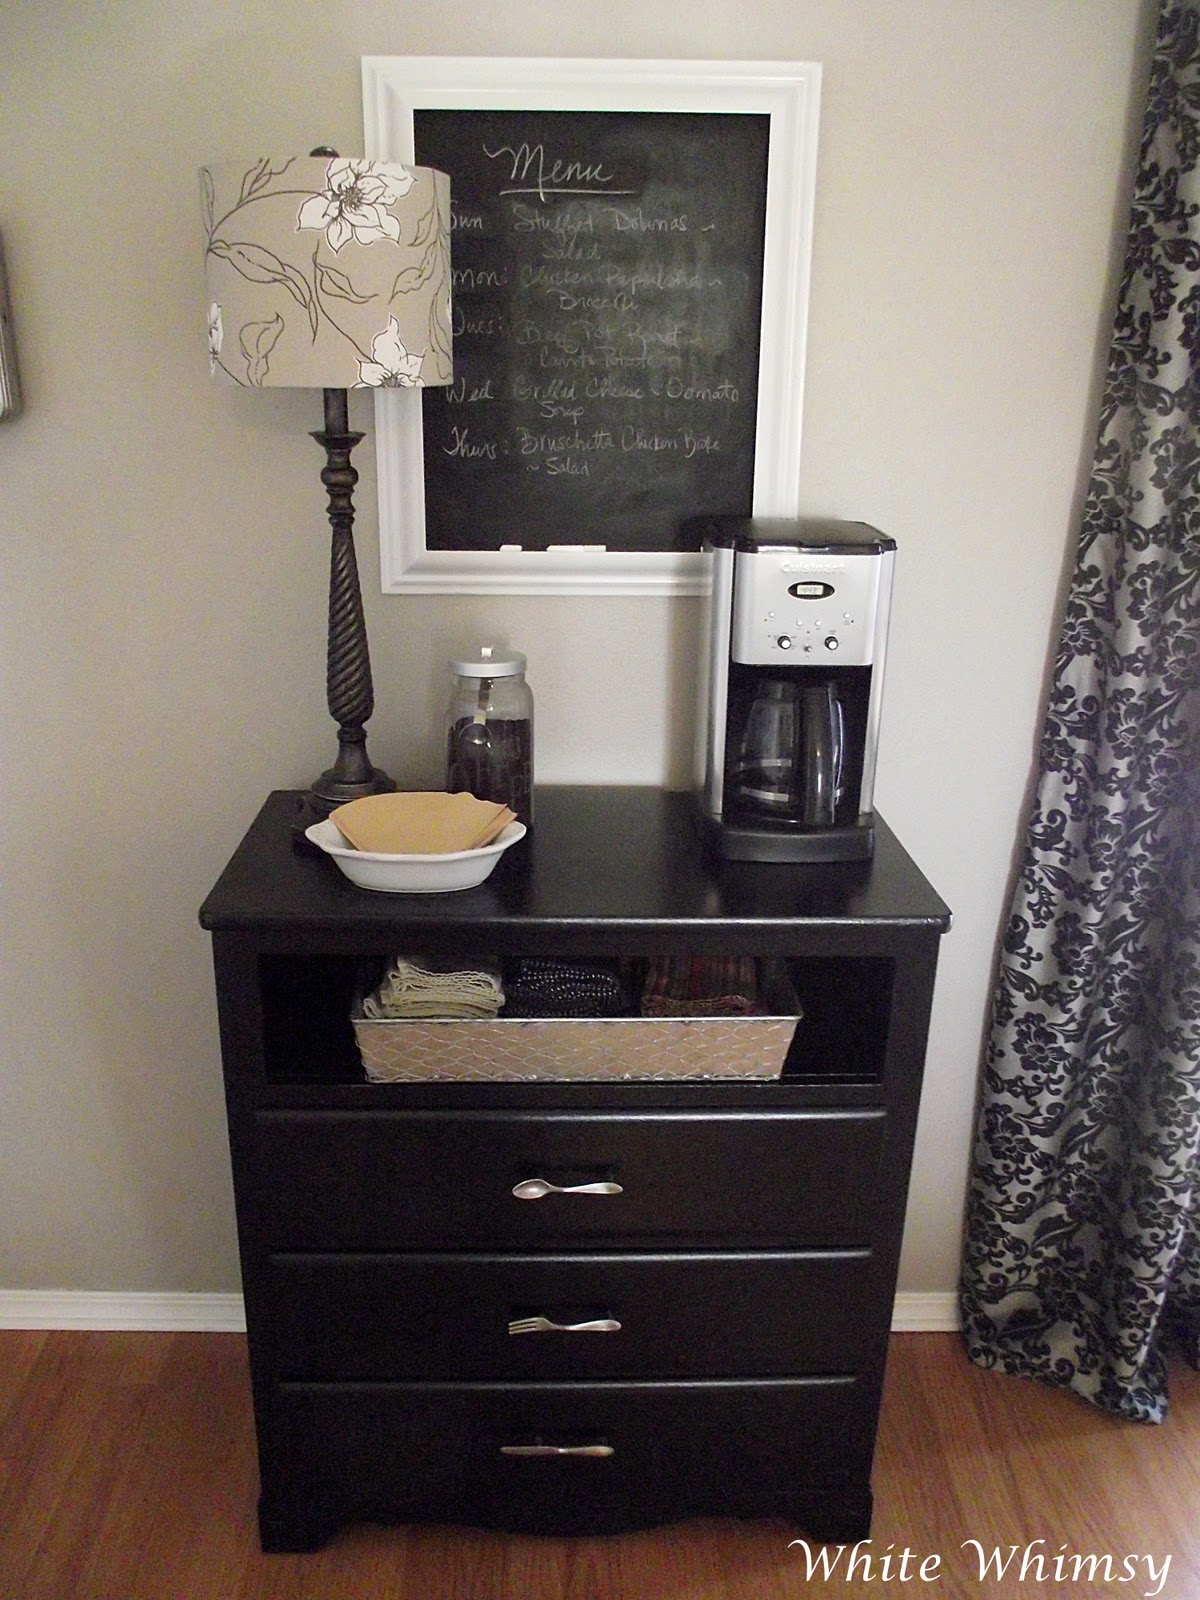 Coffee Maker In Master Bedroom : White Whimsy: A House Tour